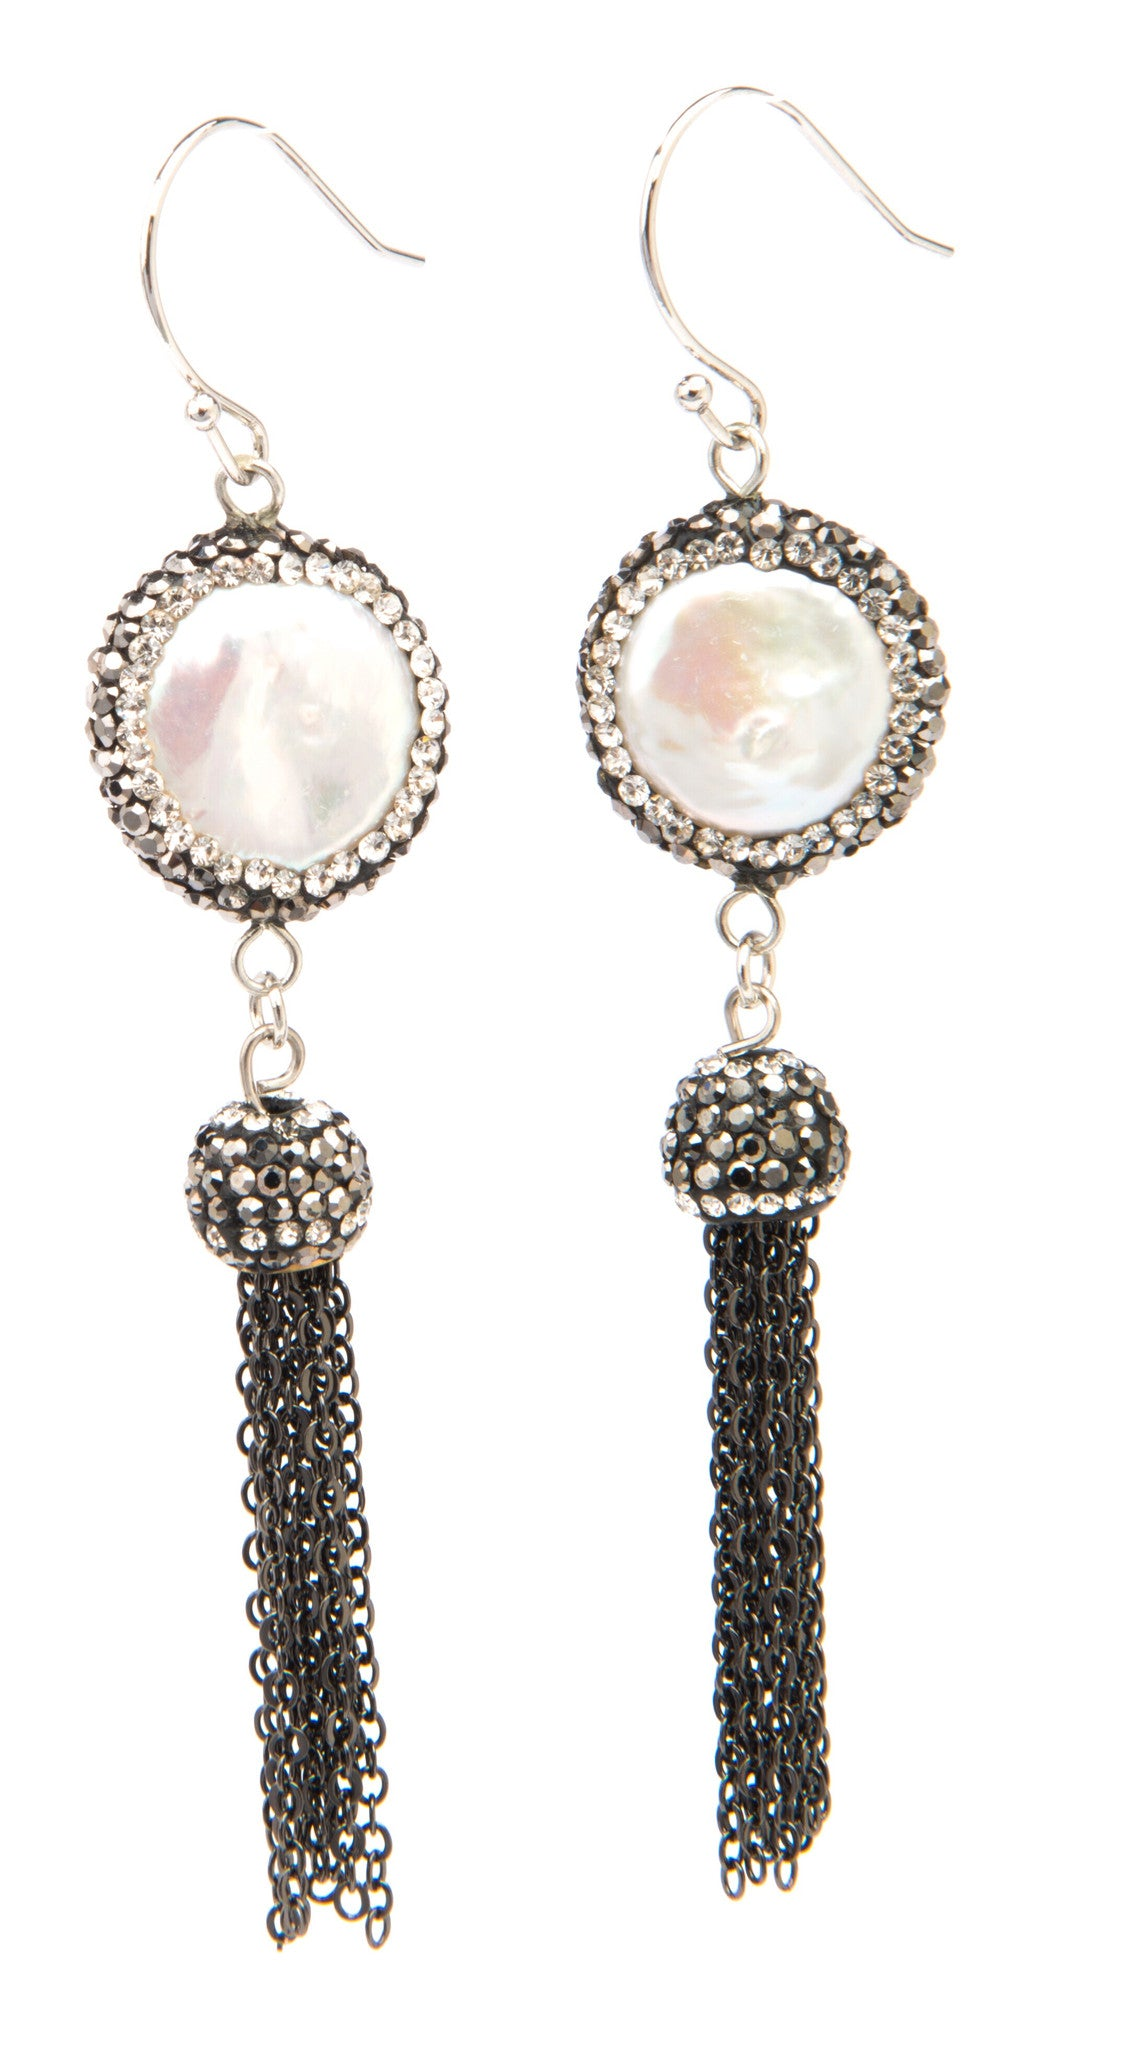 Natural coin pearls and sparkling crystal Earrings